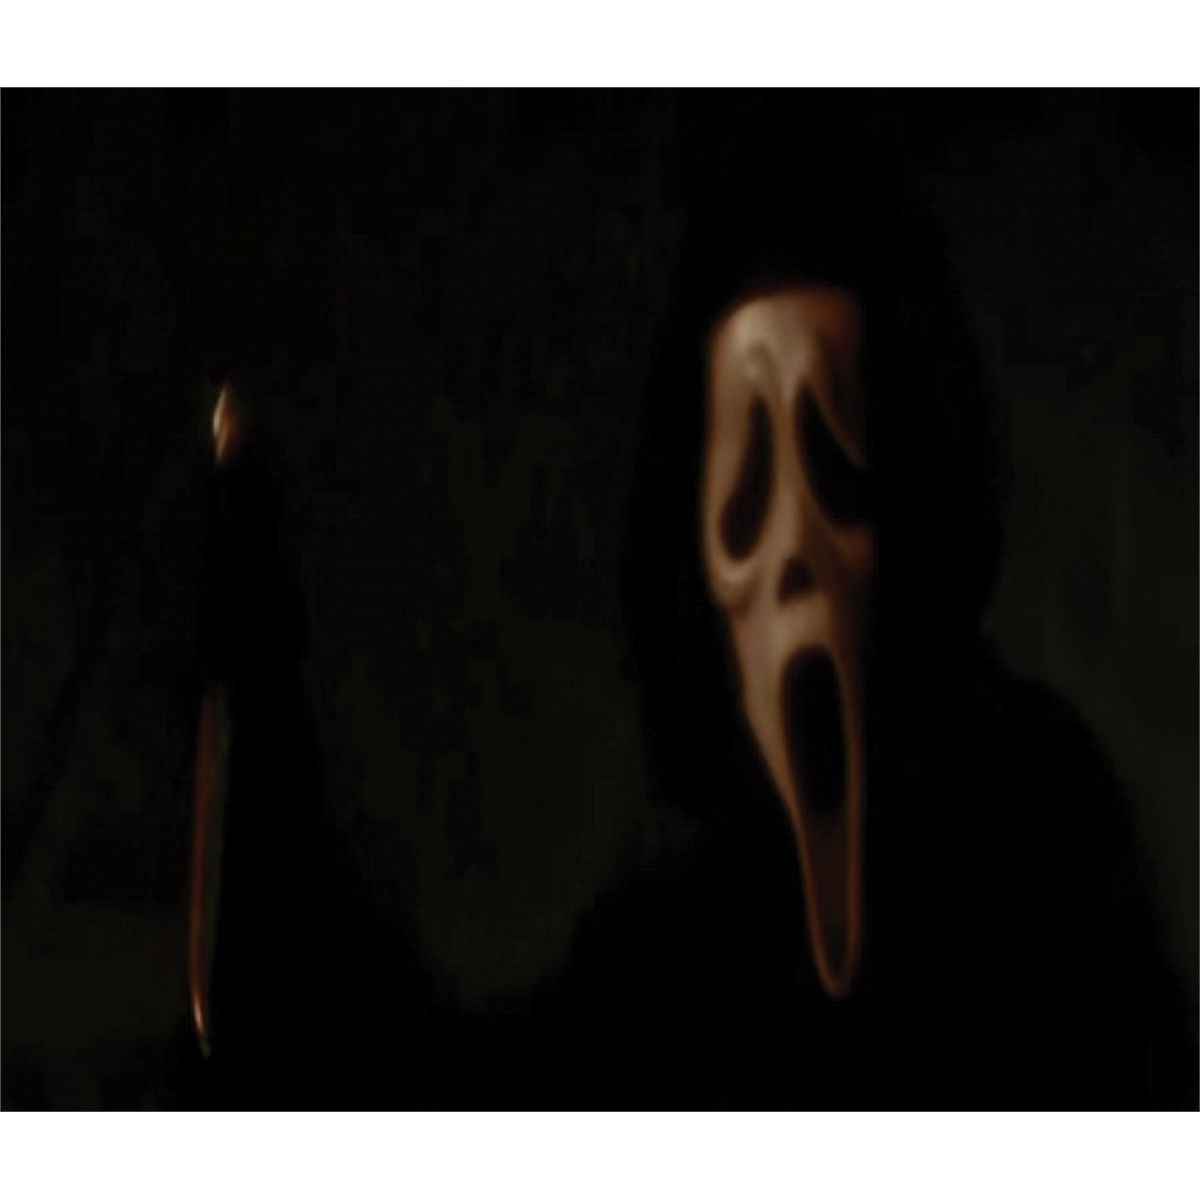 Ghostface barn scene costume from Scream 4